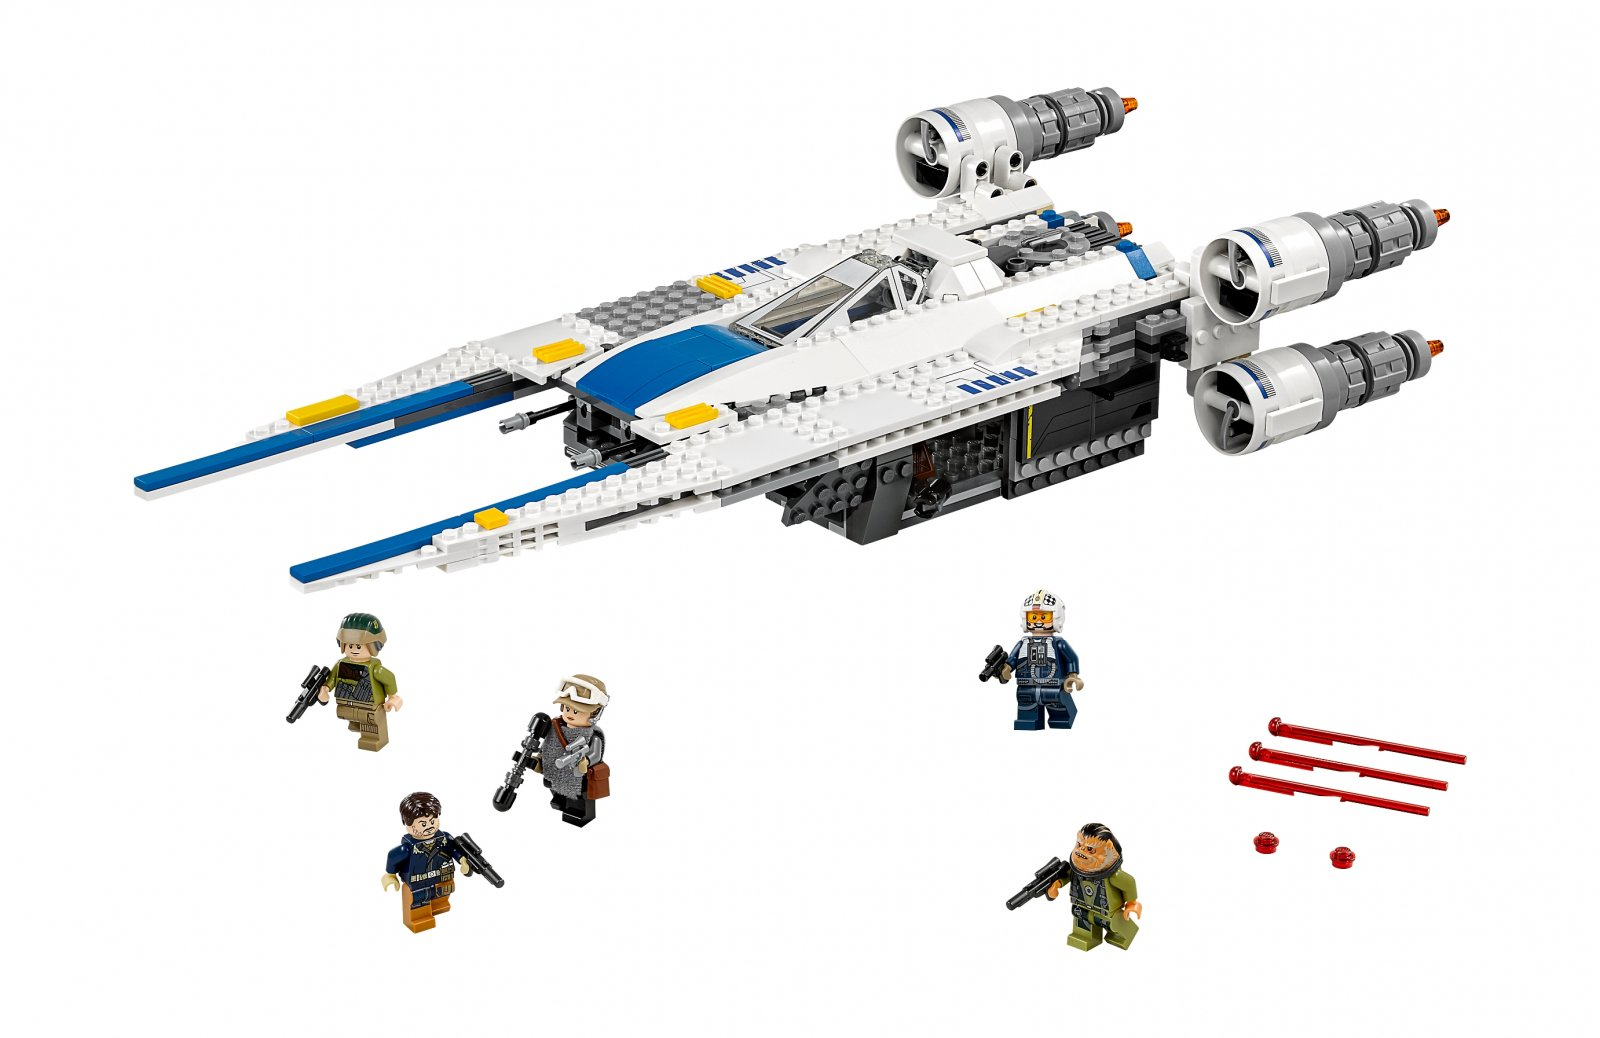 lego star wars u wing